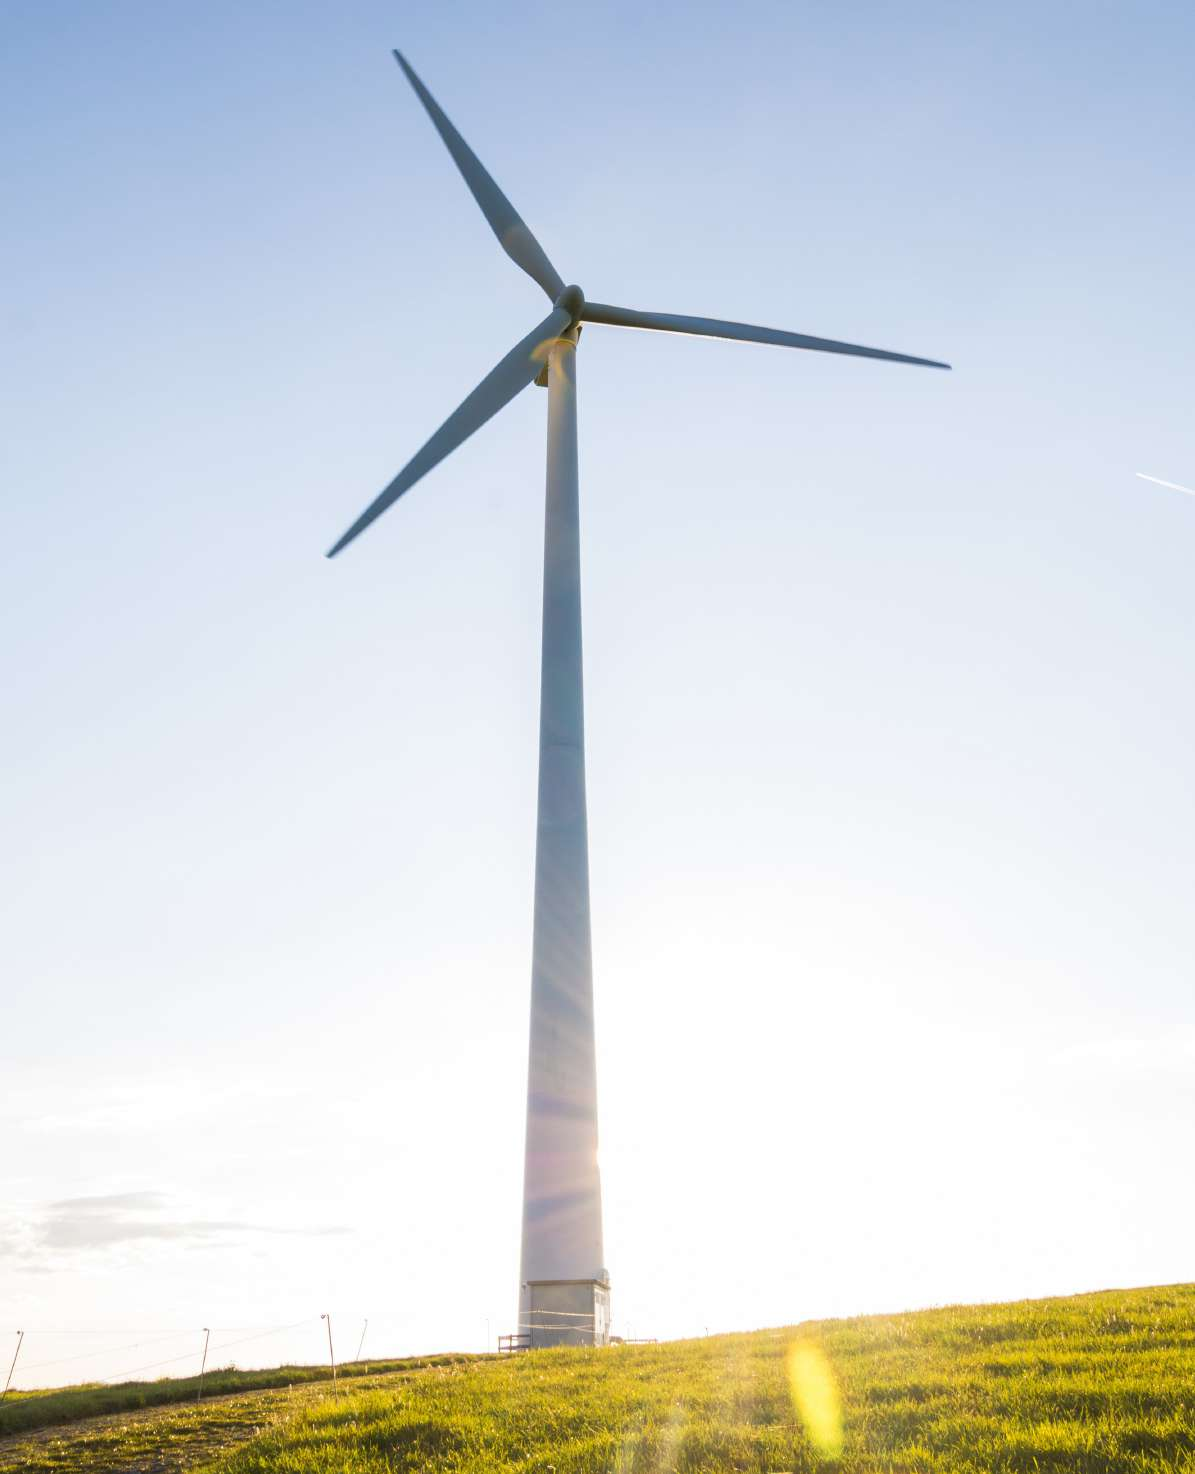 COAL DEPENDENCE FOR ENERGY BEING REPLACED BY WIND, SOLAR ENERGY